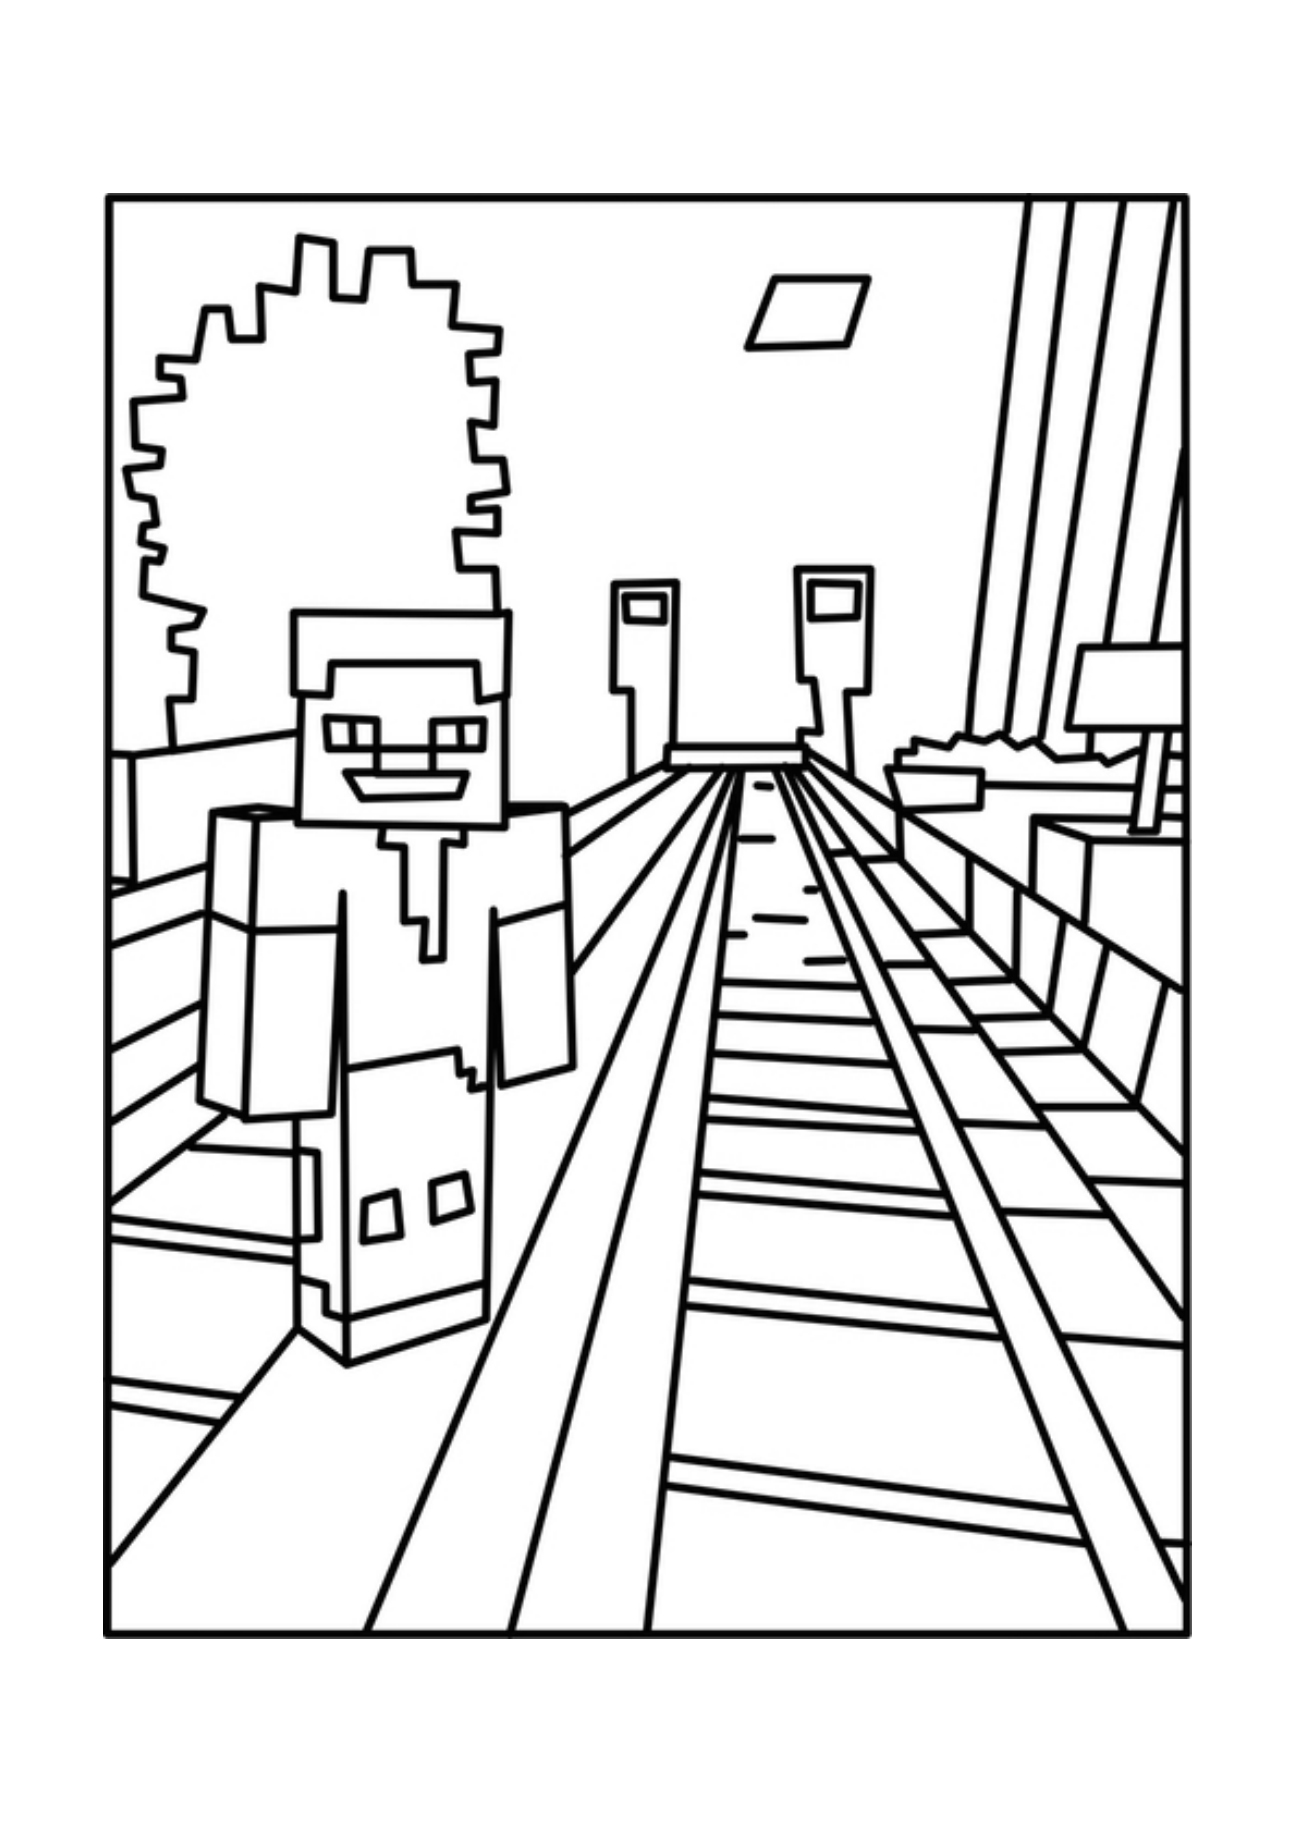 minecraft nether coloring pages minecraft coloring pages coloringpagesonlycom pages coloring nether minecraft